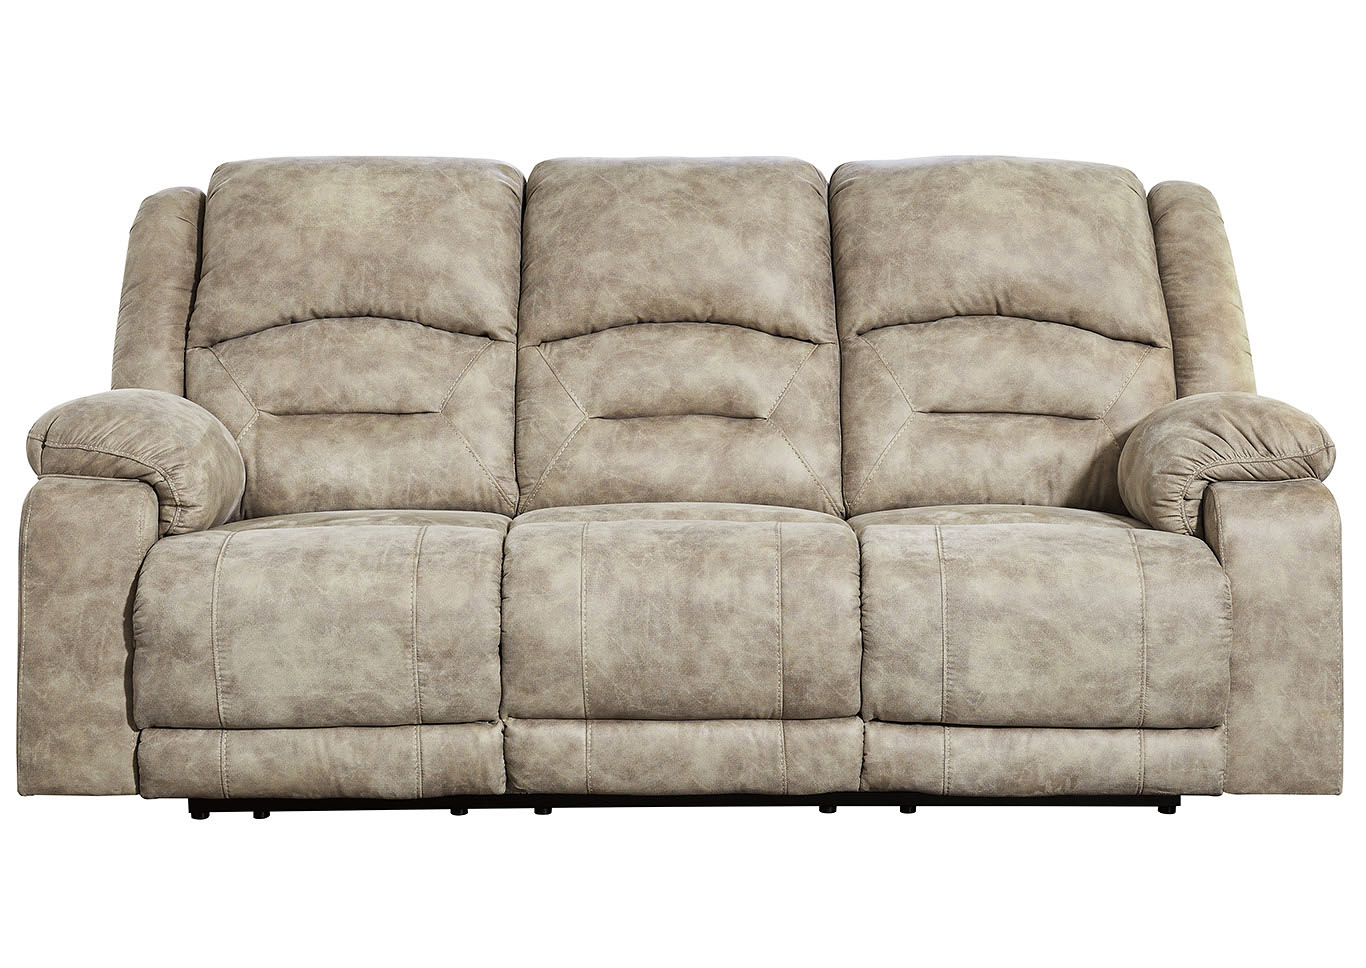 McGinty Graystone Power Reclining Sofa w/Adjustable Headrest,Signature Design By Ashley